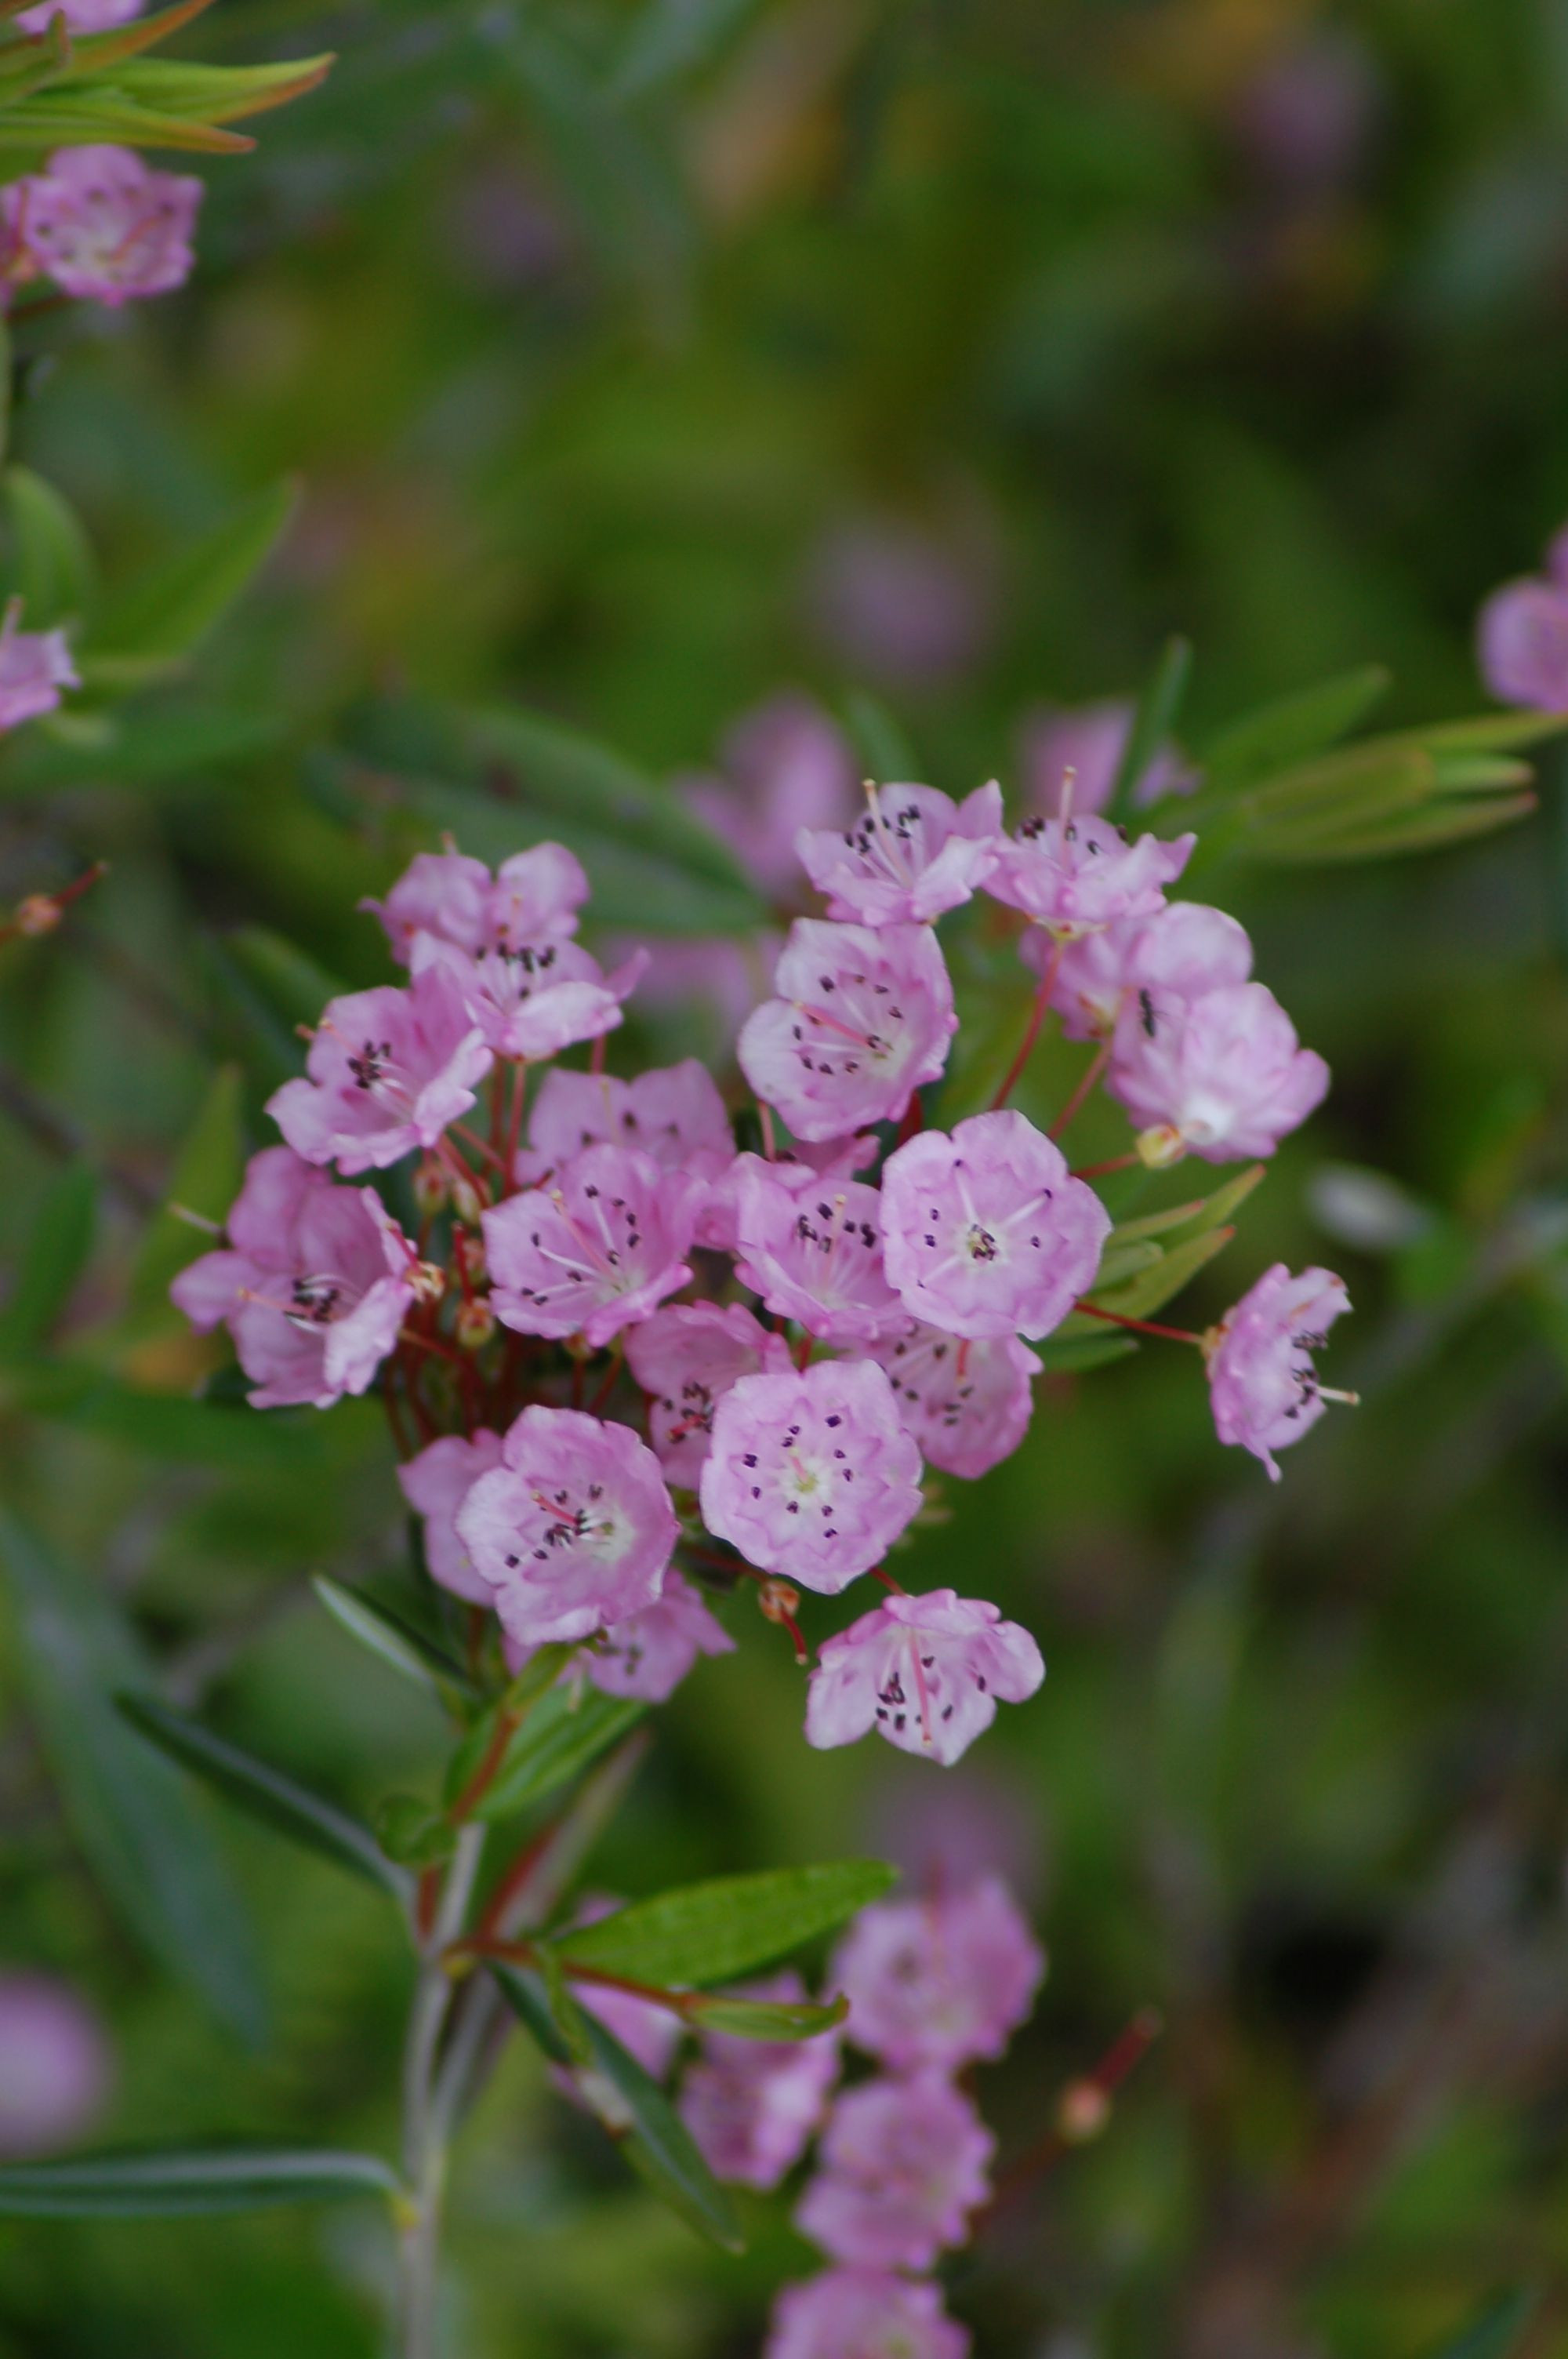 I photographed this sheep laurel bush on the Schoodic Peninusla in Maine In my article on mountain laurel I touch on everything from growing the shrubs to